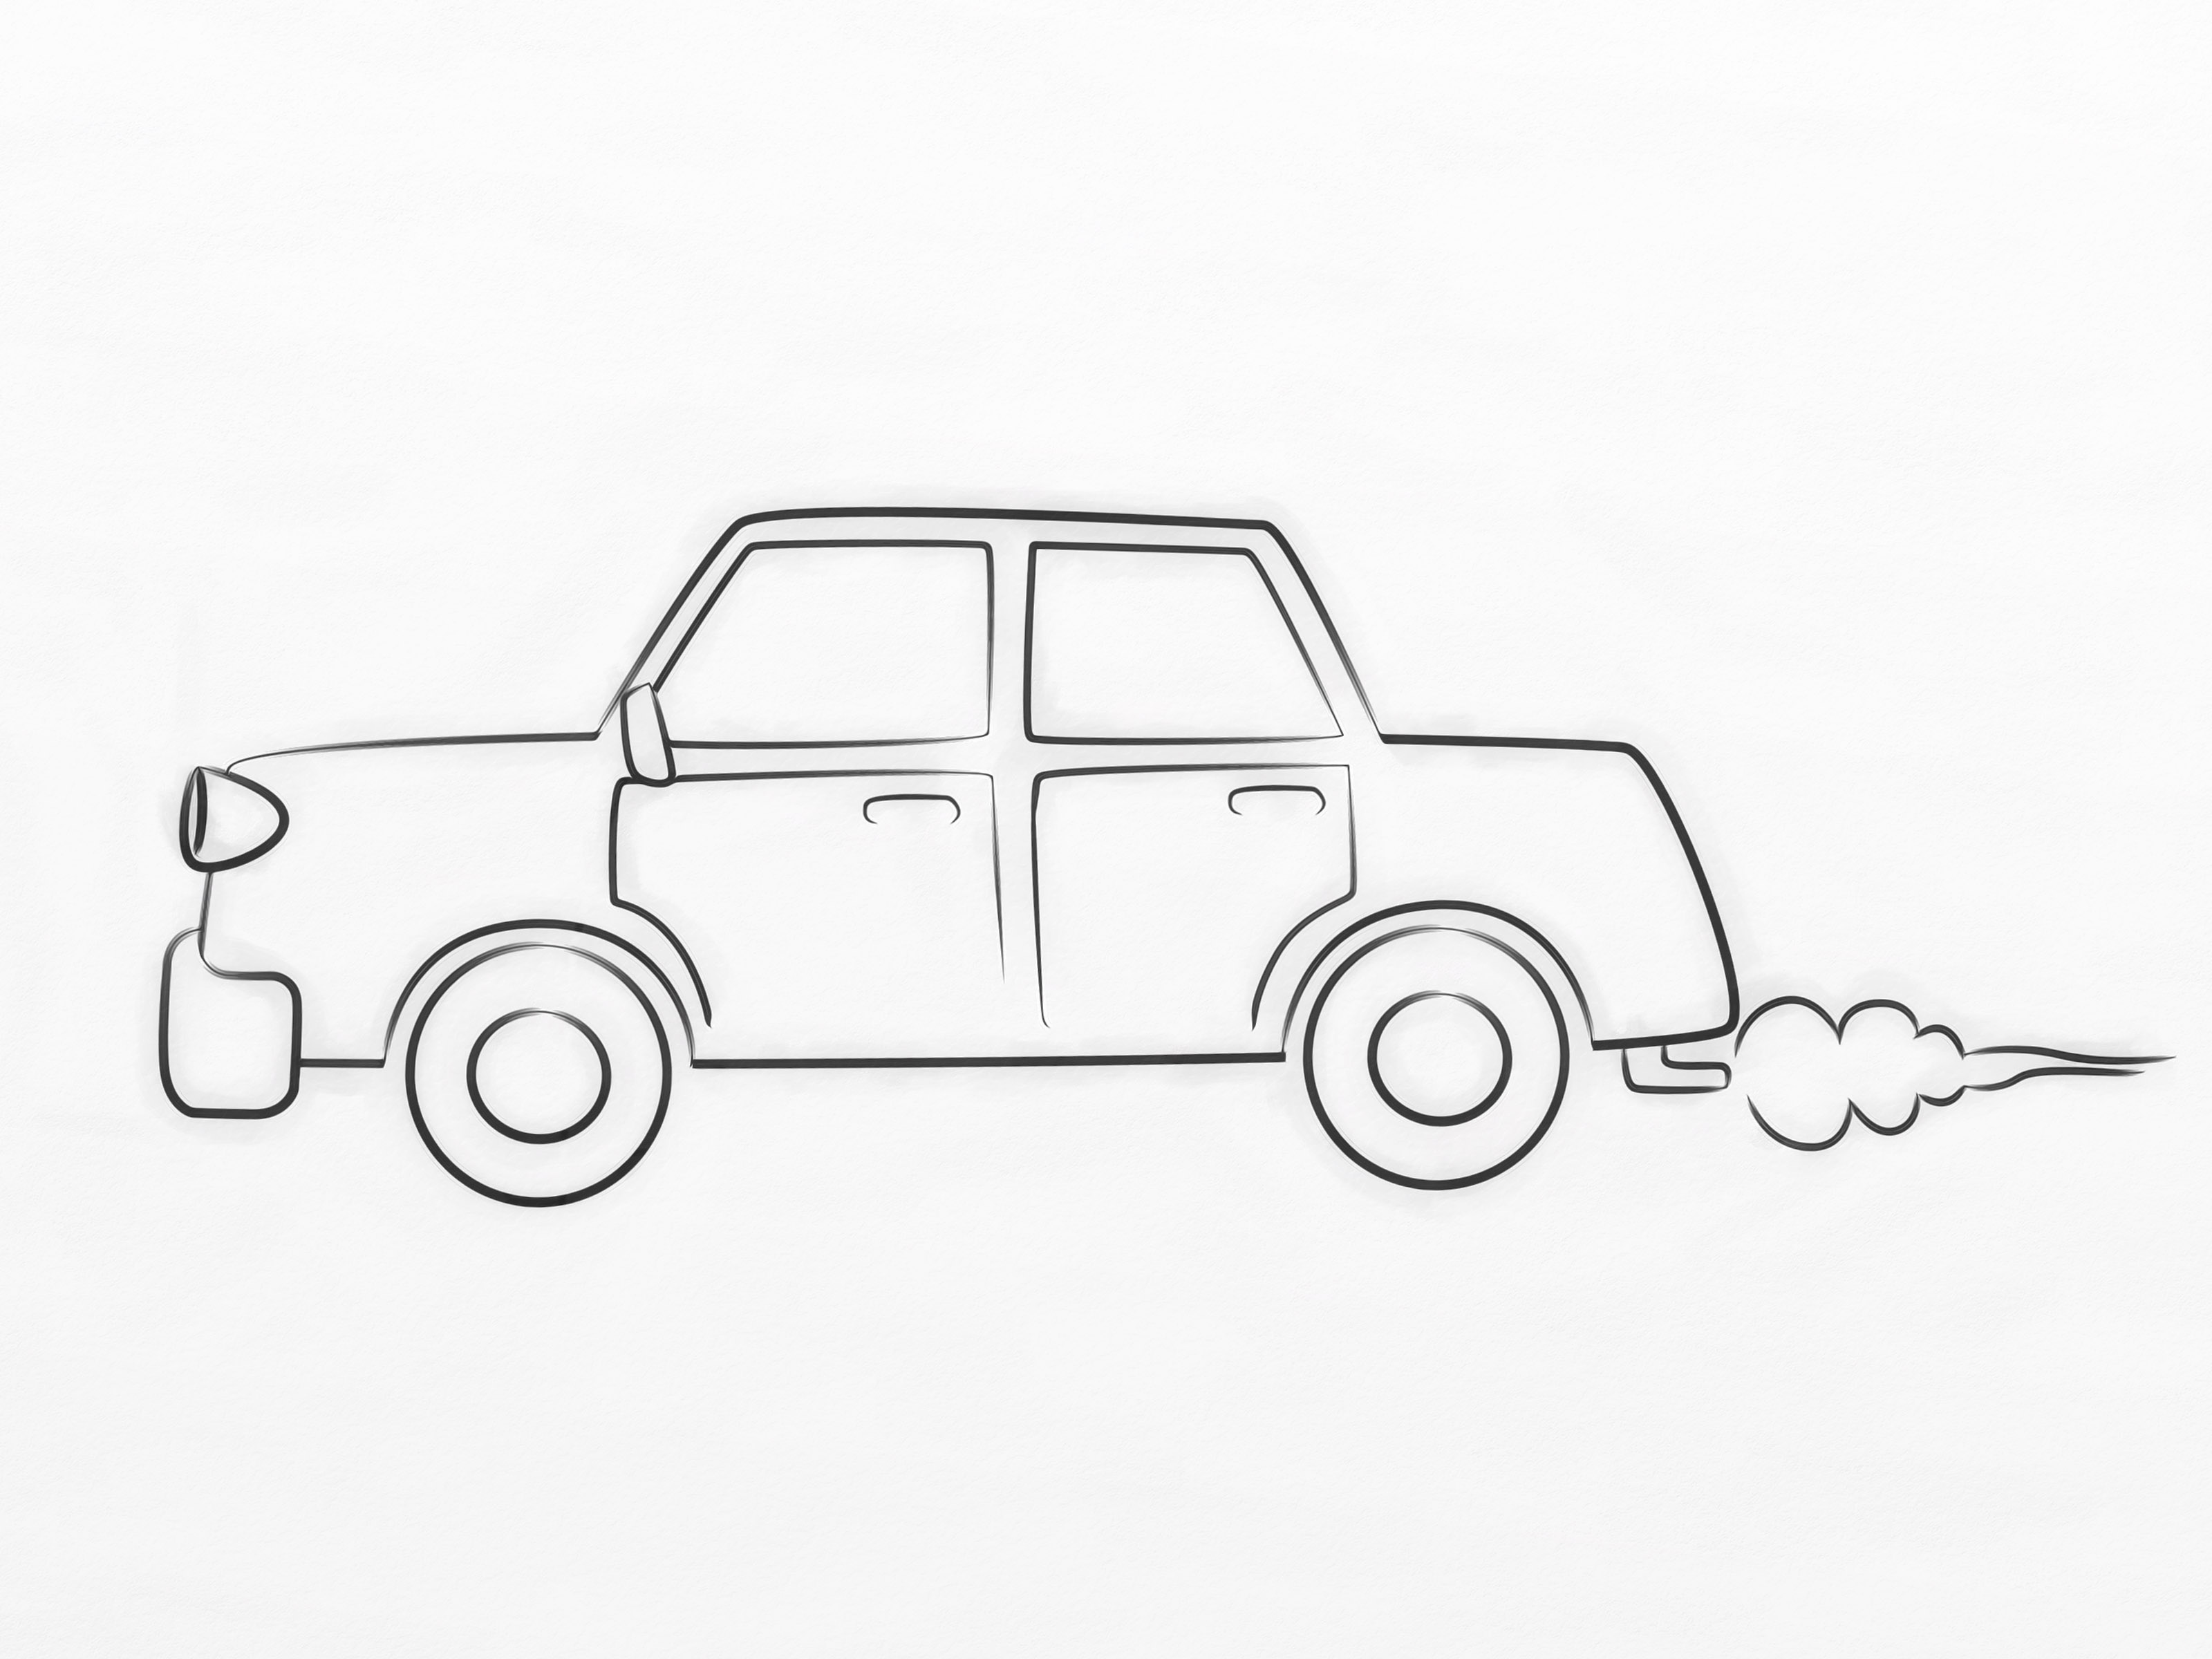 How To Draw A Cartoon Car 8 Steps With Pictures